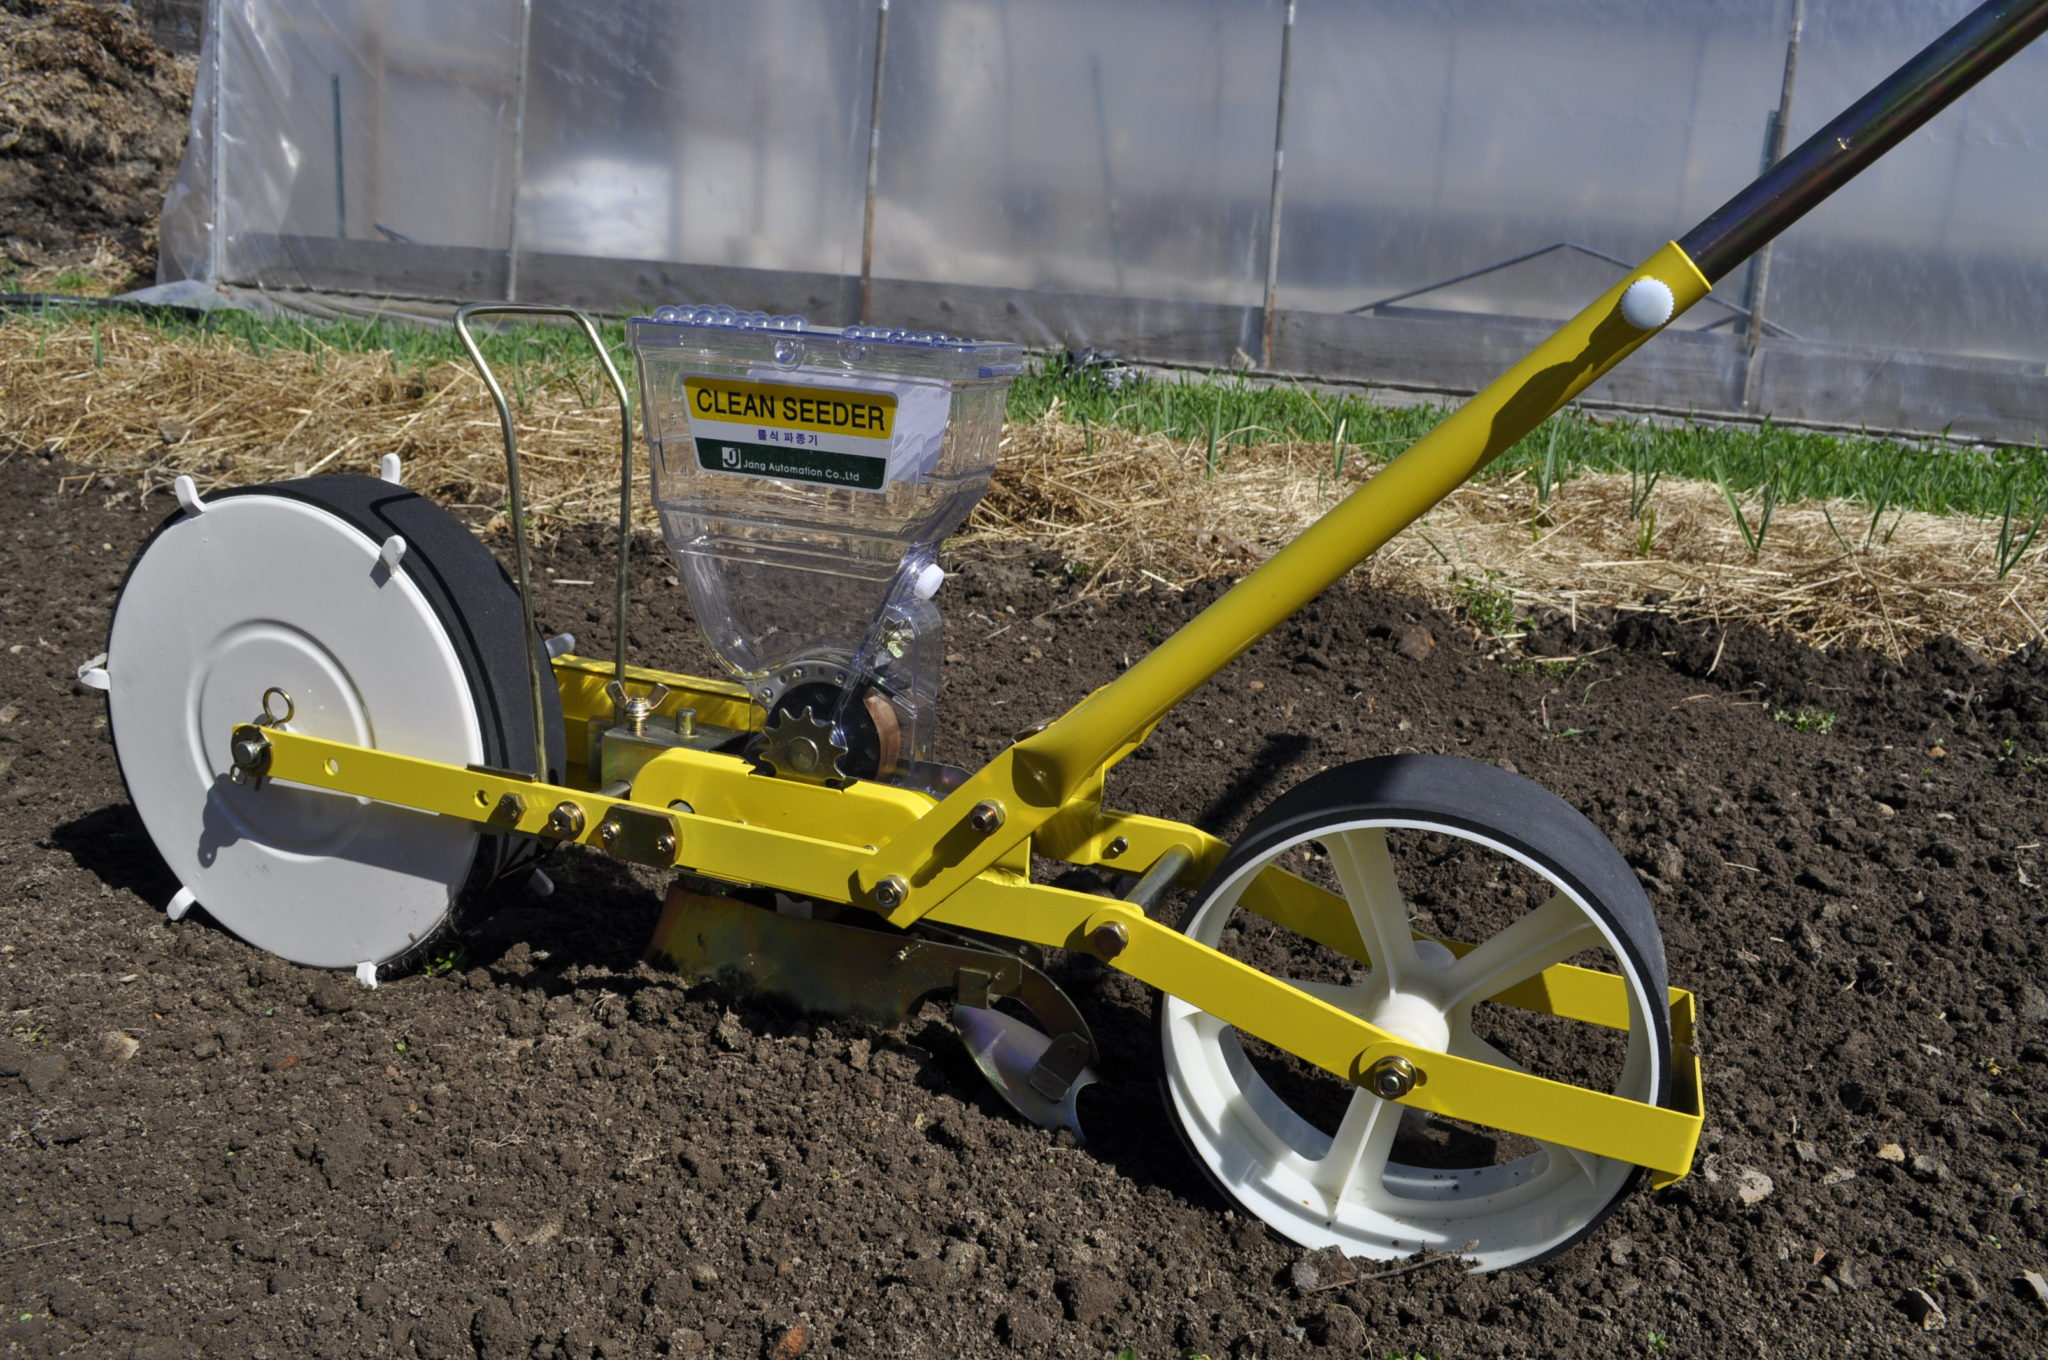 Johnny and his JP-1 Jang Seeder by Hoop House